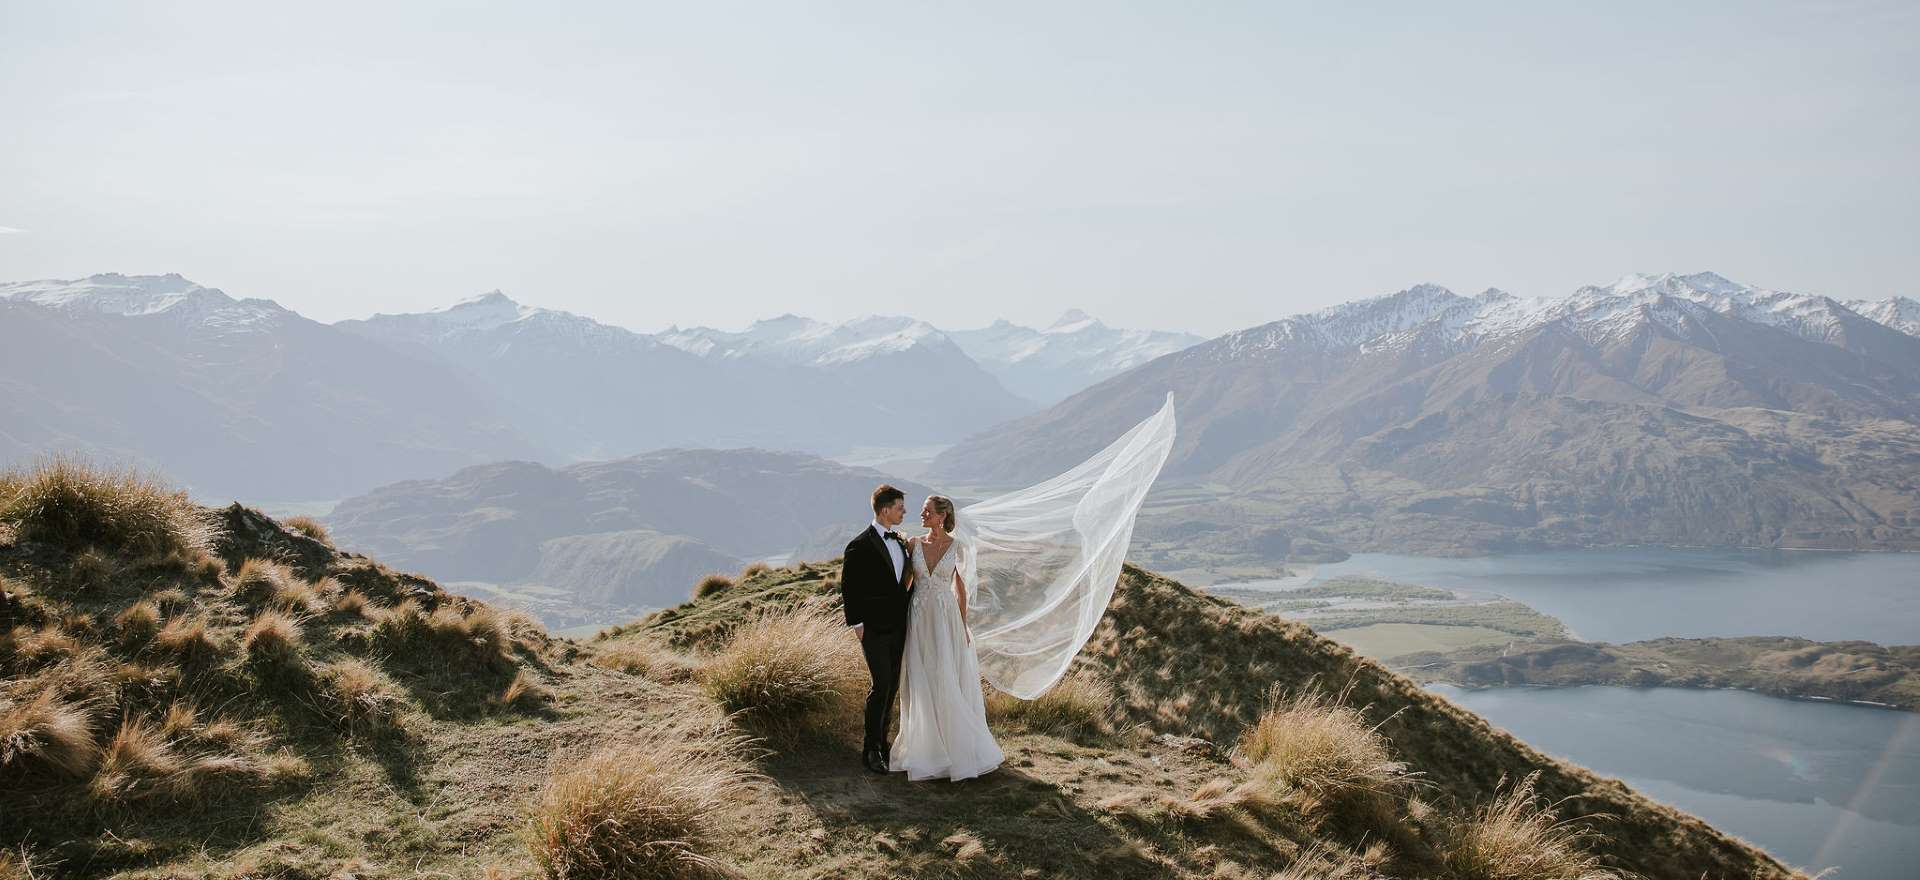 Tregold-wedding-planning-queenstown-wanaka